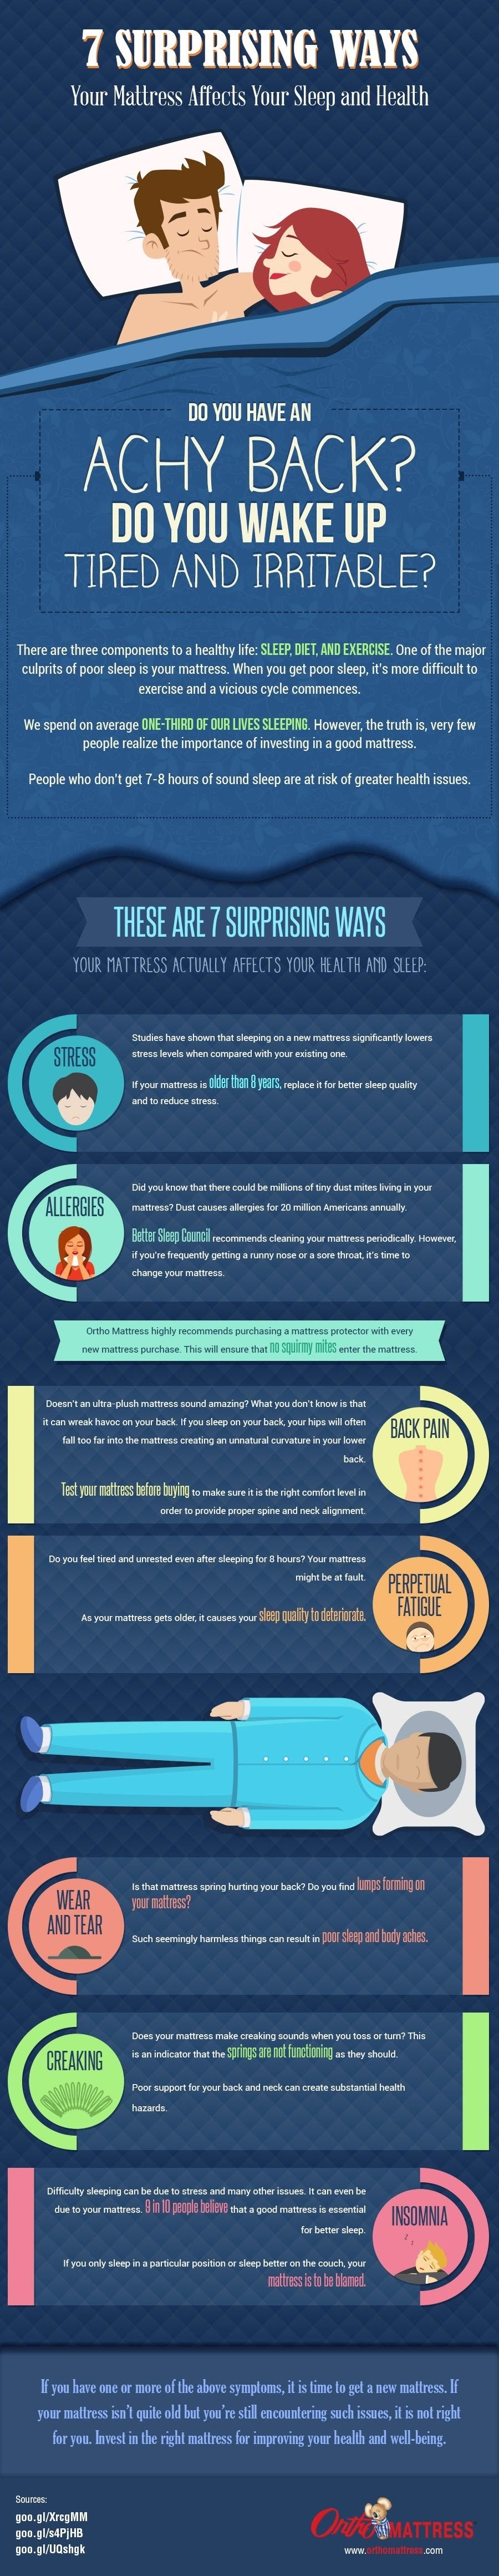 7 Surprising Ways Your Mattress Affects Your Sleep and Health #infographic